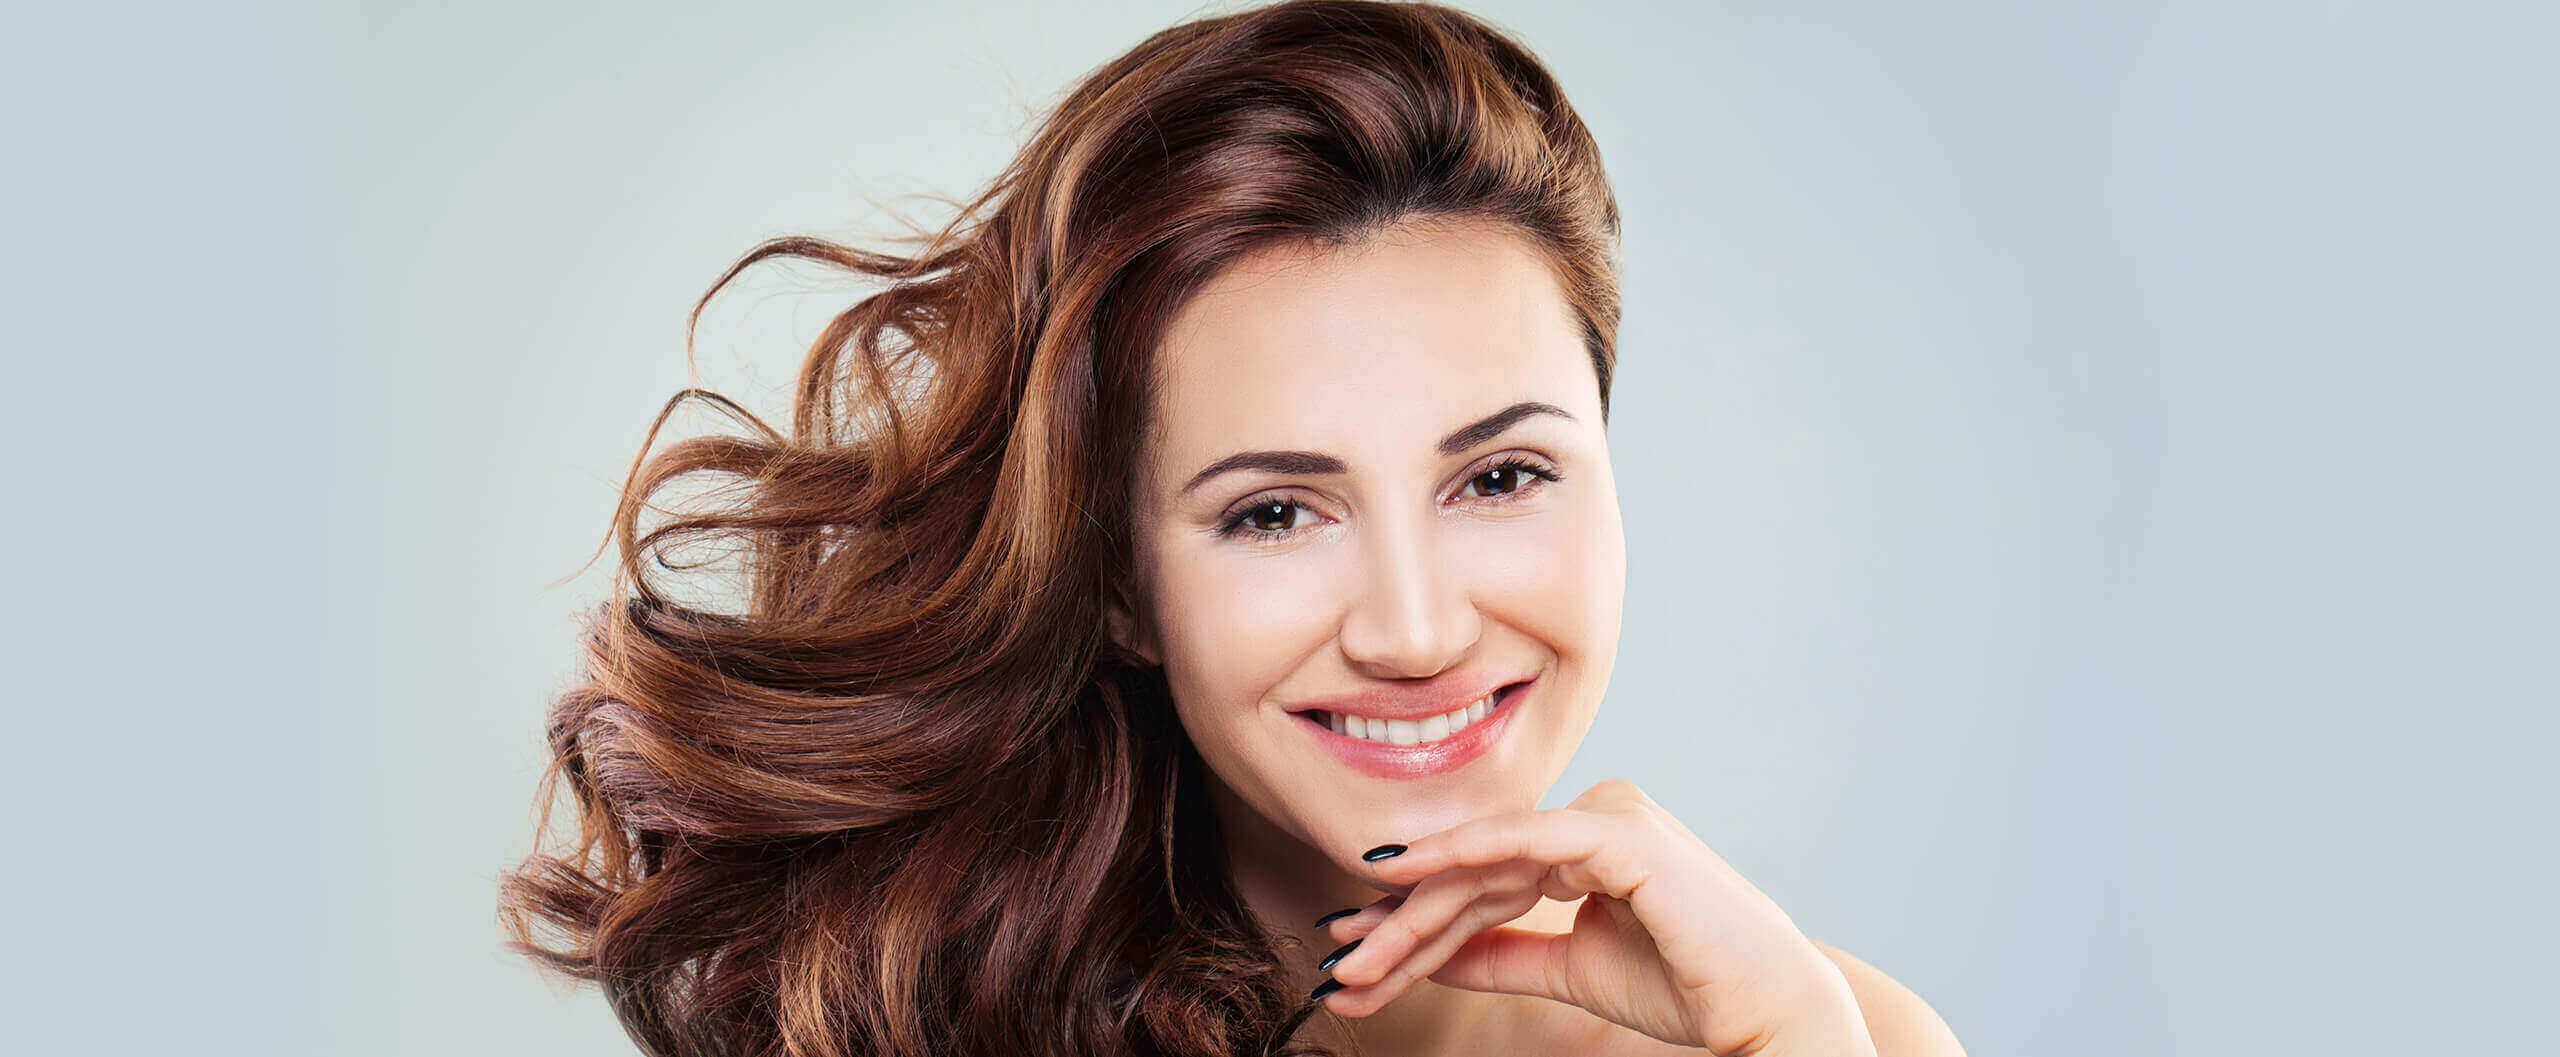 woman with beautiful white smile